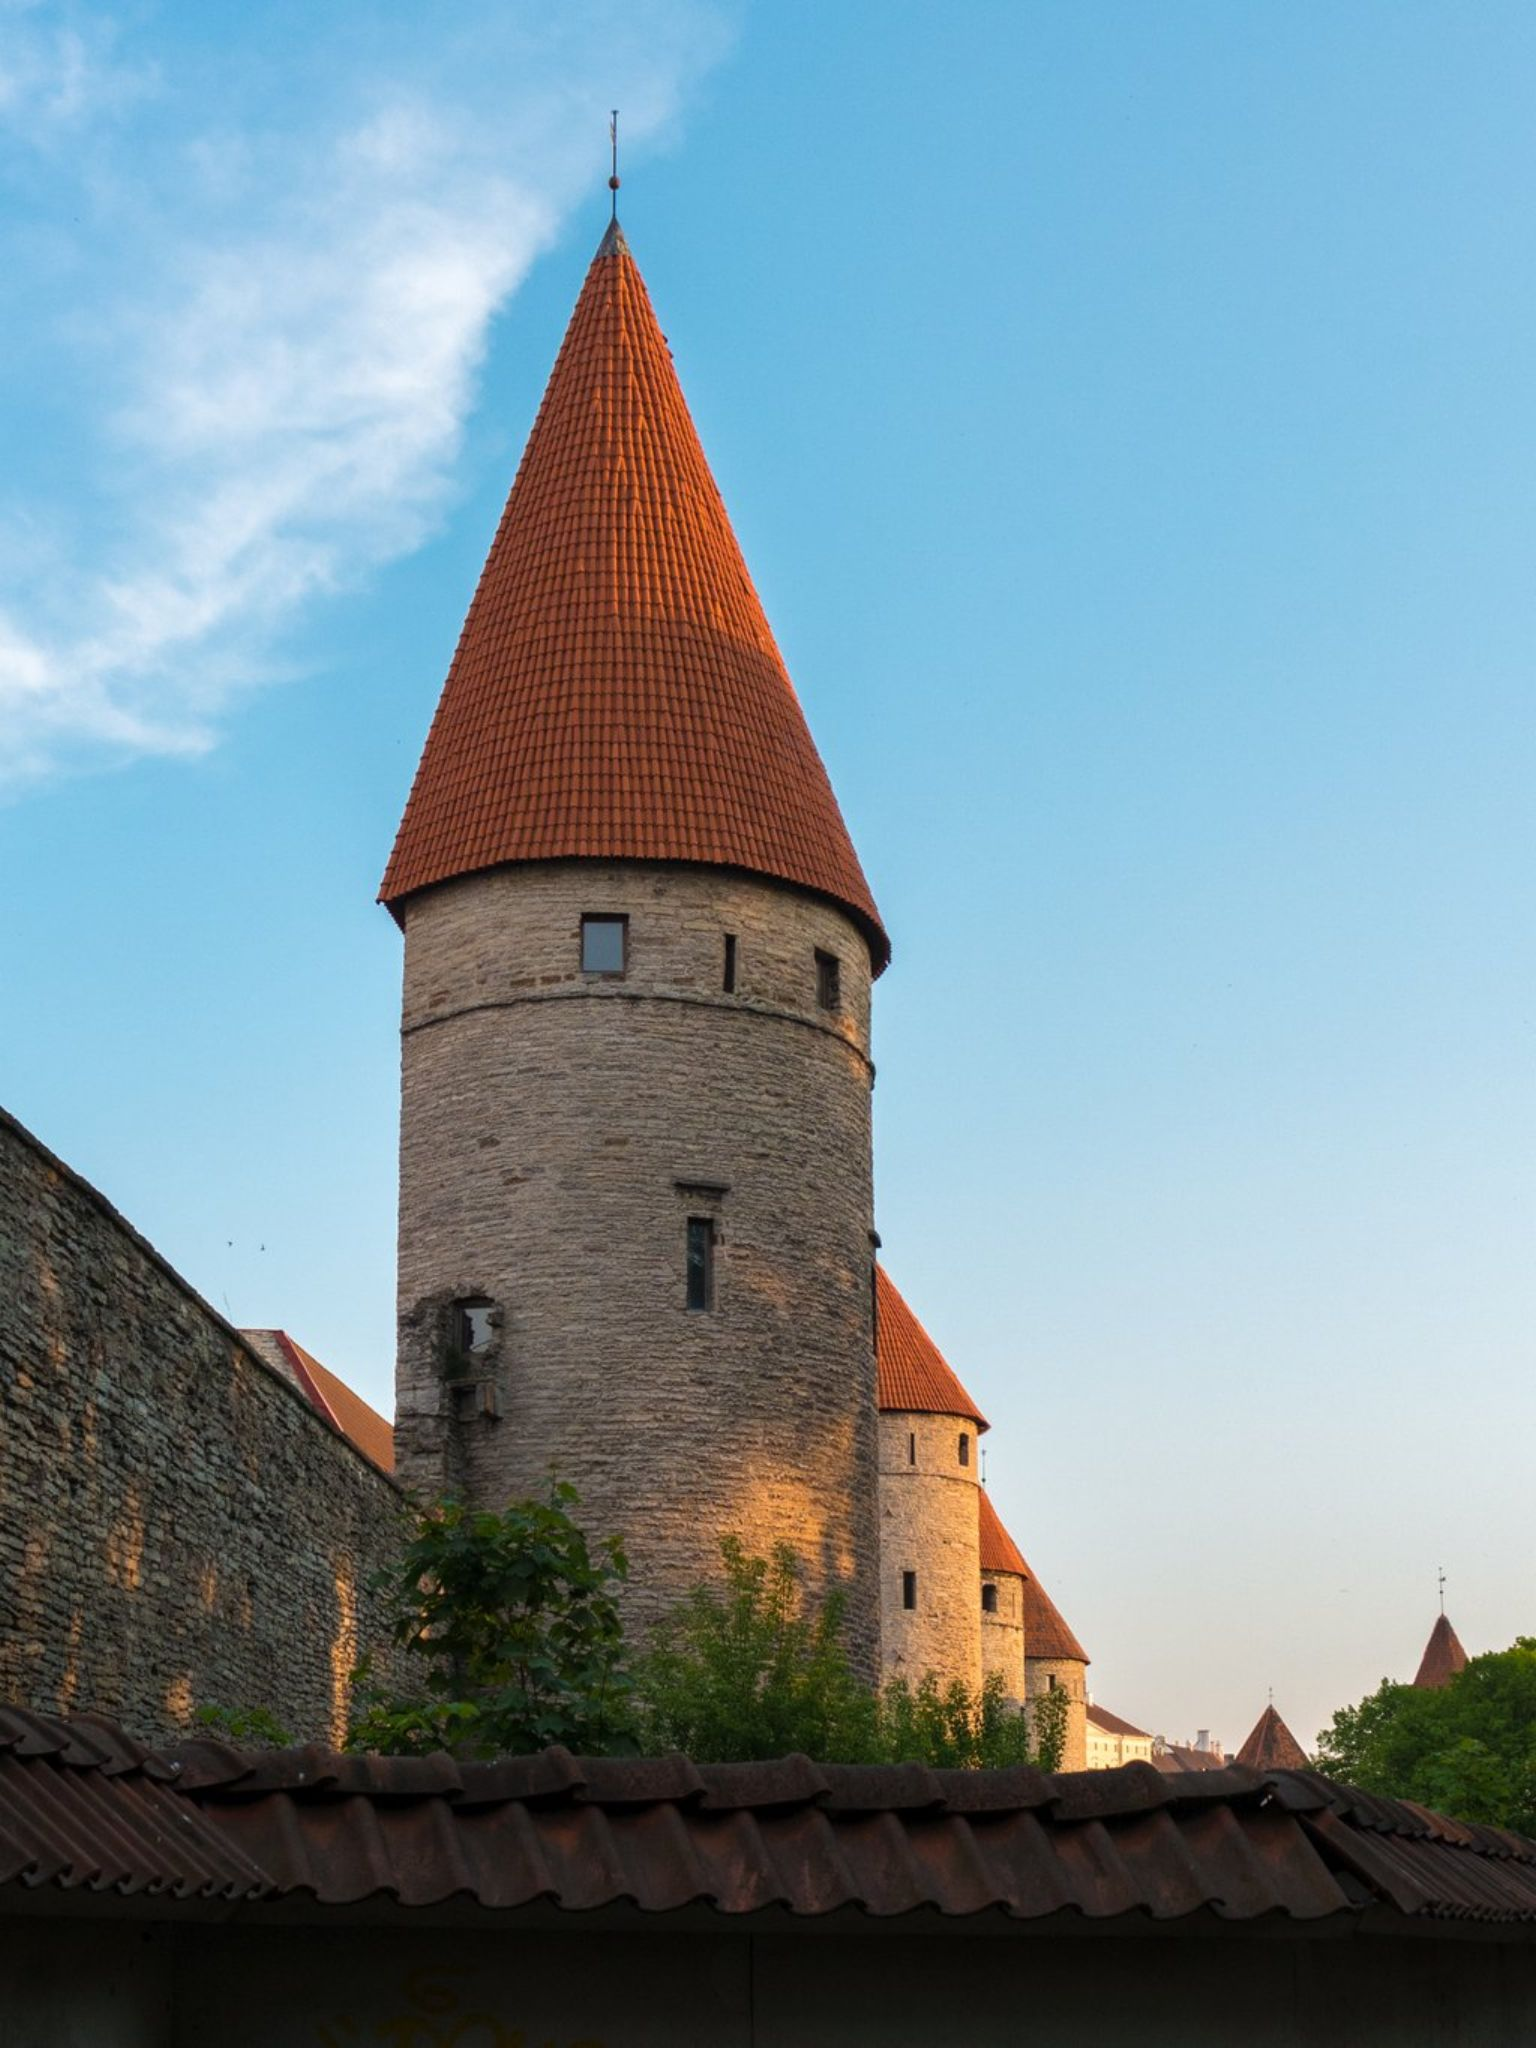 Tallinn, Estonia City Wall and Guard Towers by erikcoxphotography